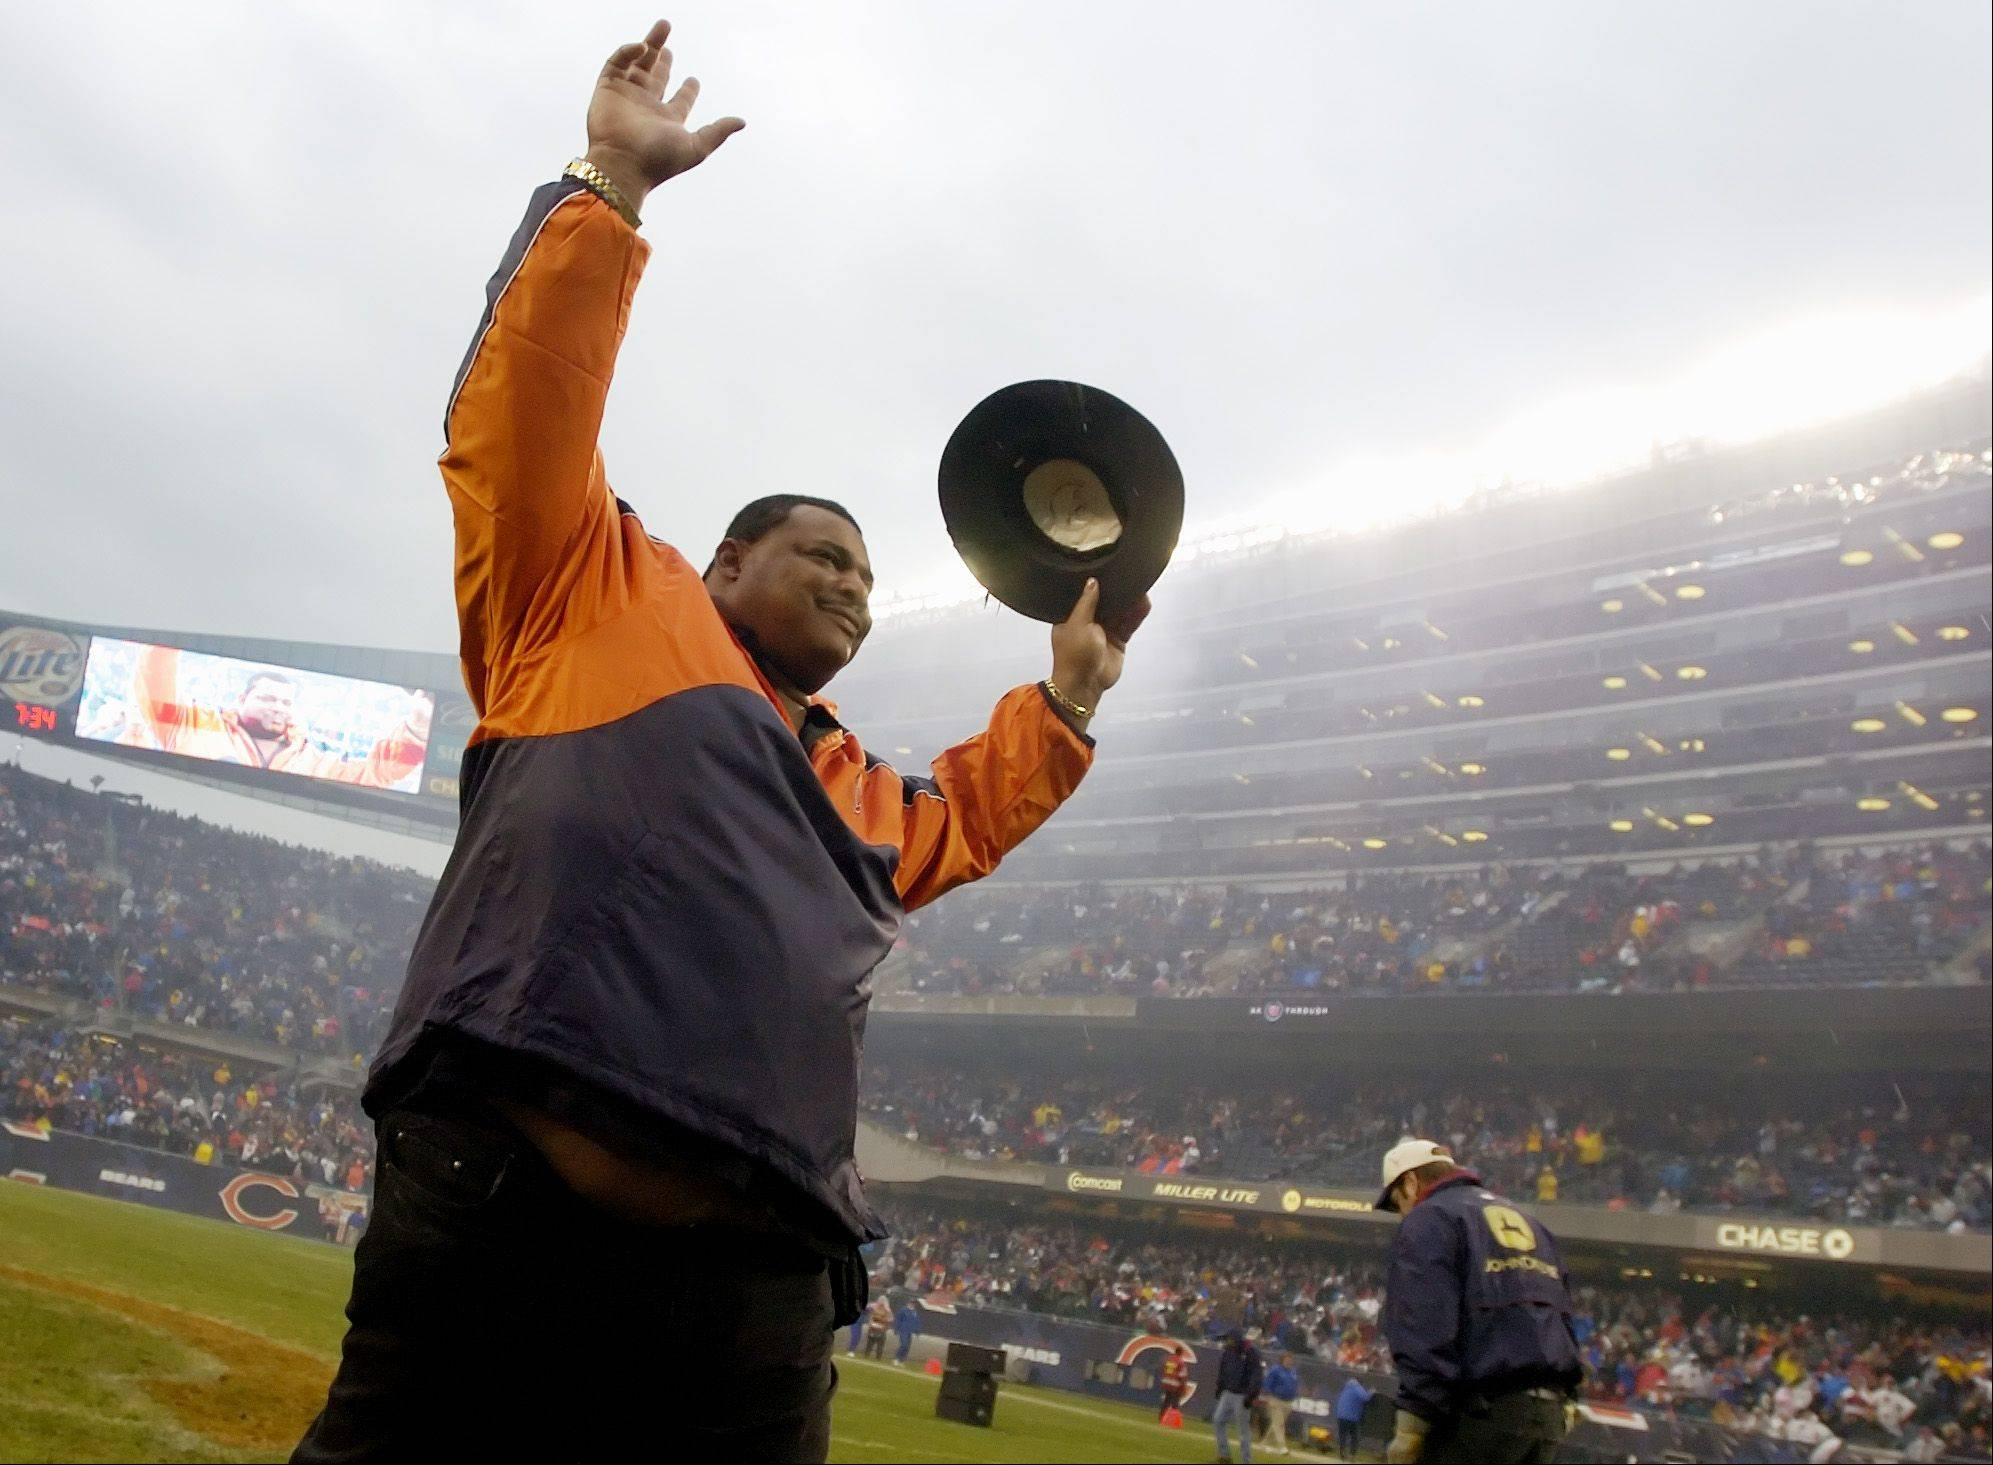 What the Bears need now is more defensive linemen like William �Refrigerator� Perry.